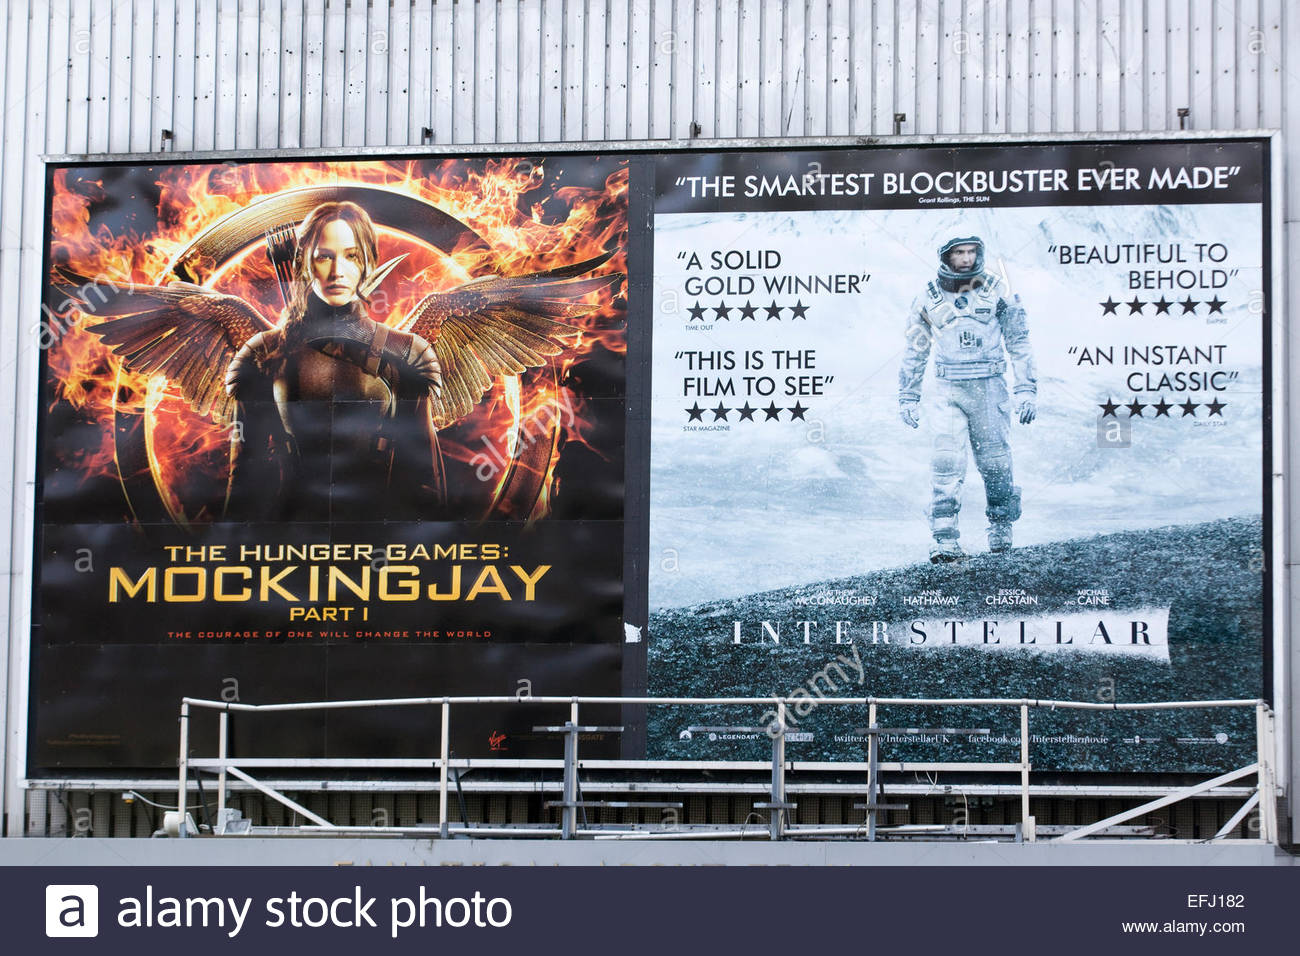 Poster advertising The Hunger Games Mockingjay Part 1and interstellar - Stock Image